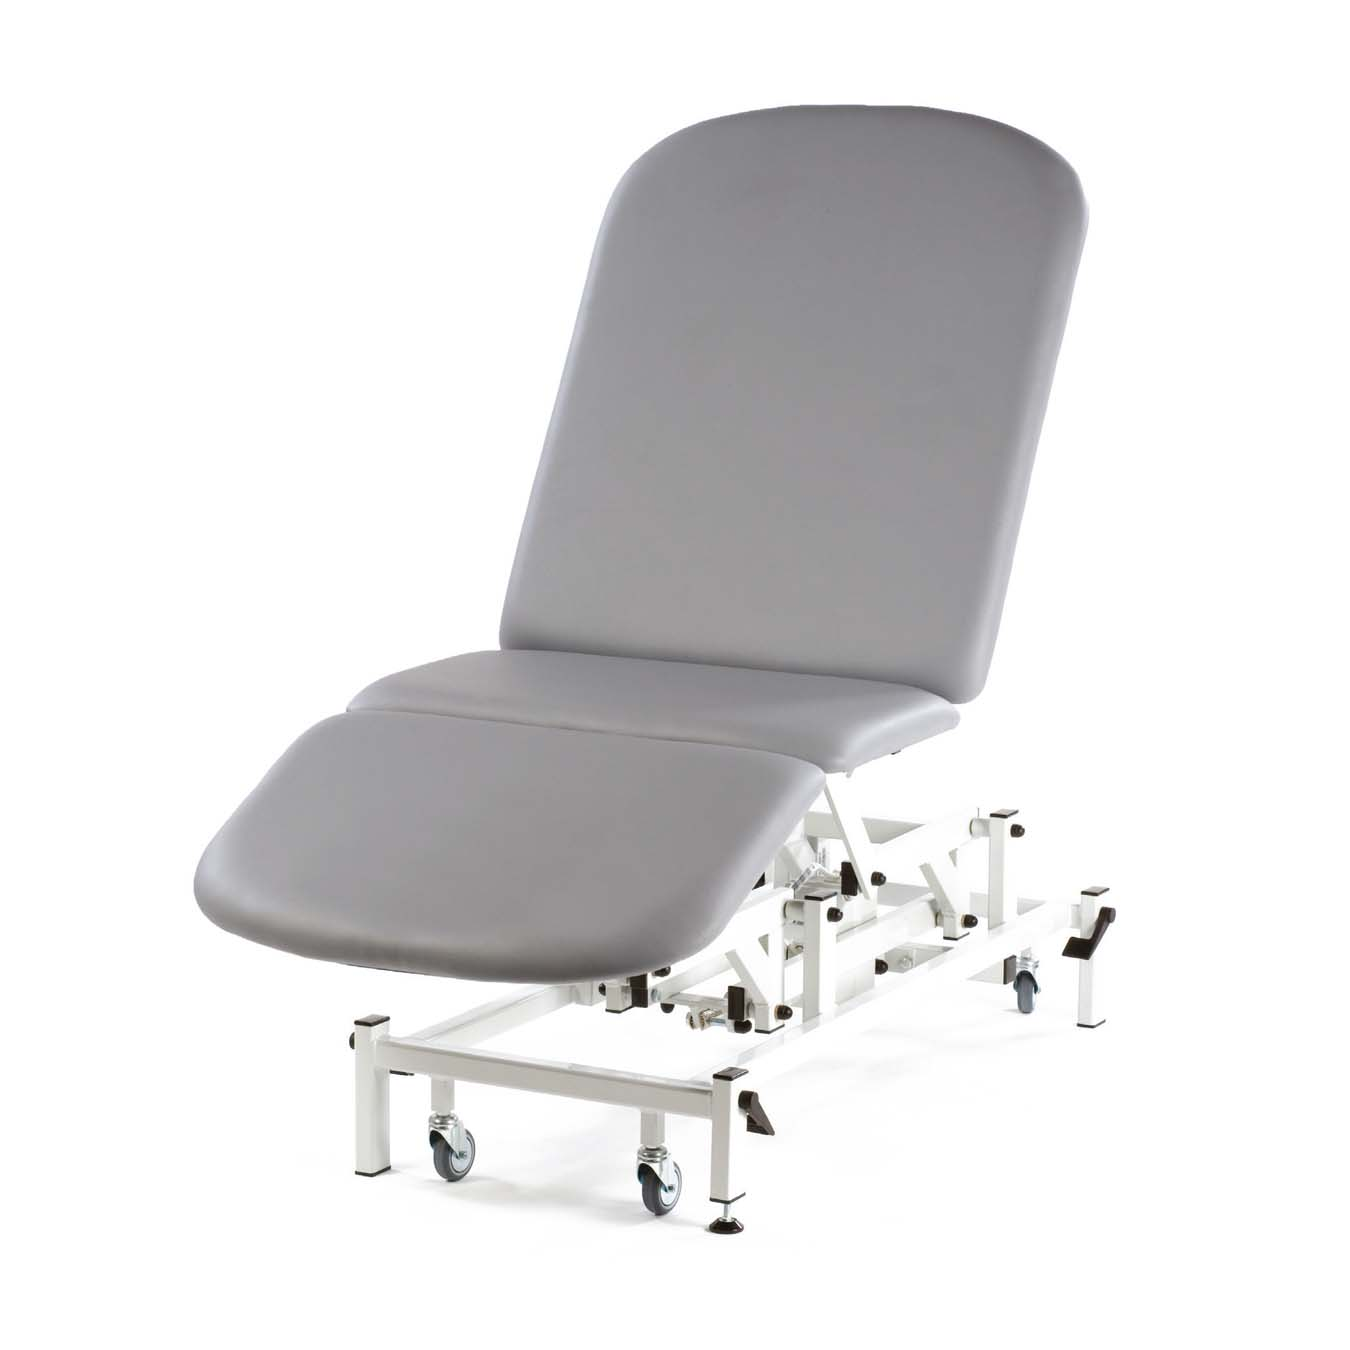 SM3573_1_Seers-Medicare-Bariatric-3-Section-Couch_1